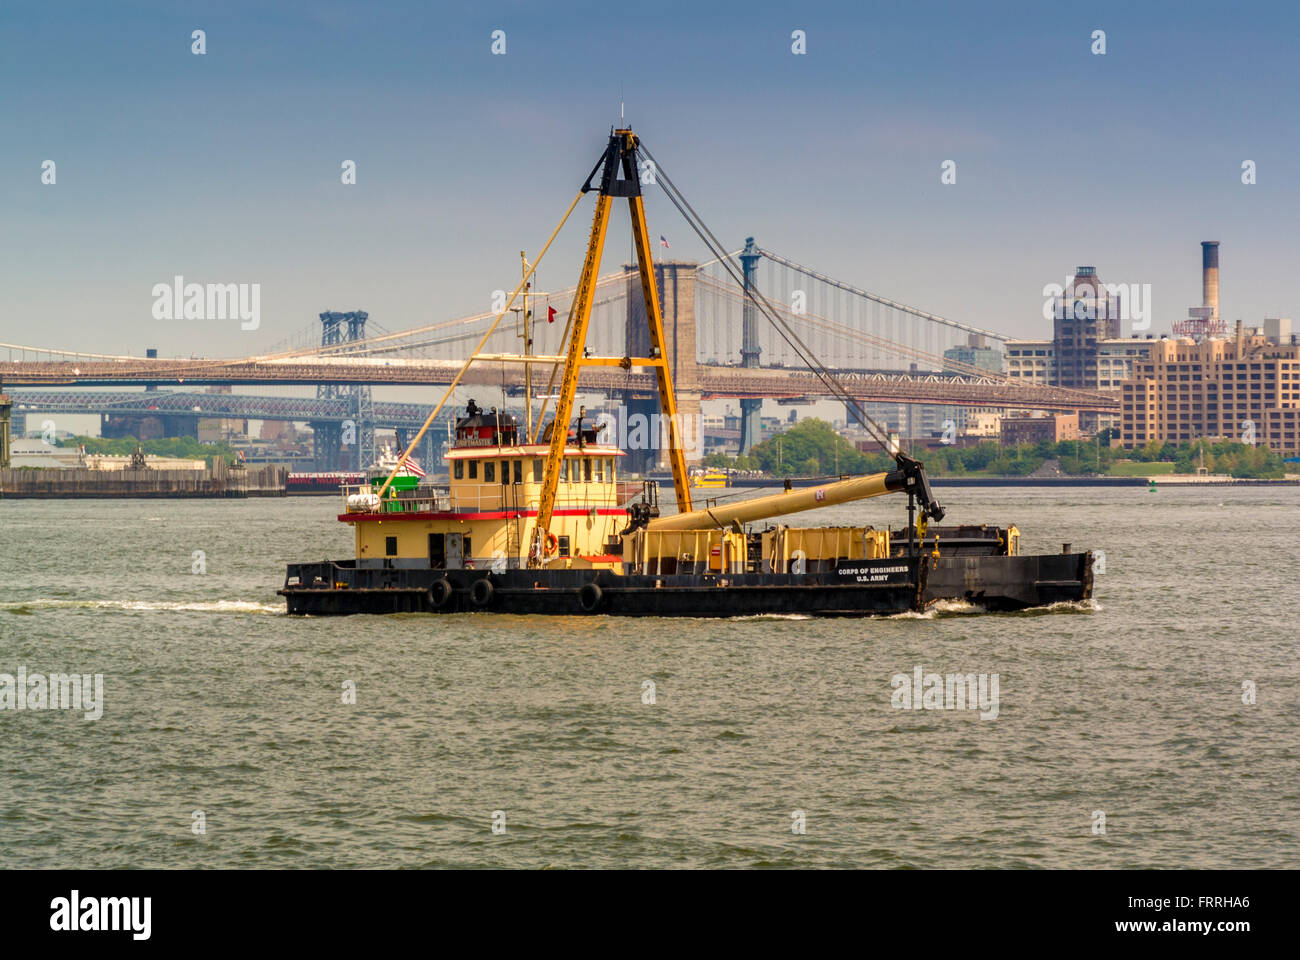 U.S. Army Corps of Engineers work boat on the East River with Brooklyn Bridge in background, New York, USA. - Stock Image